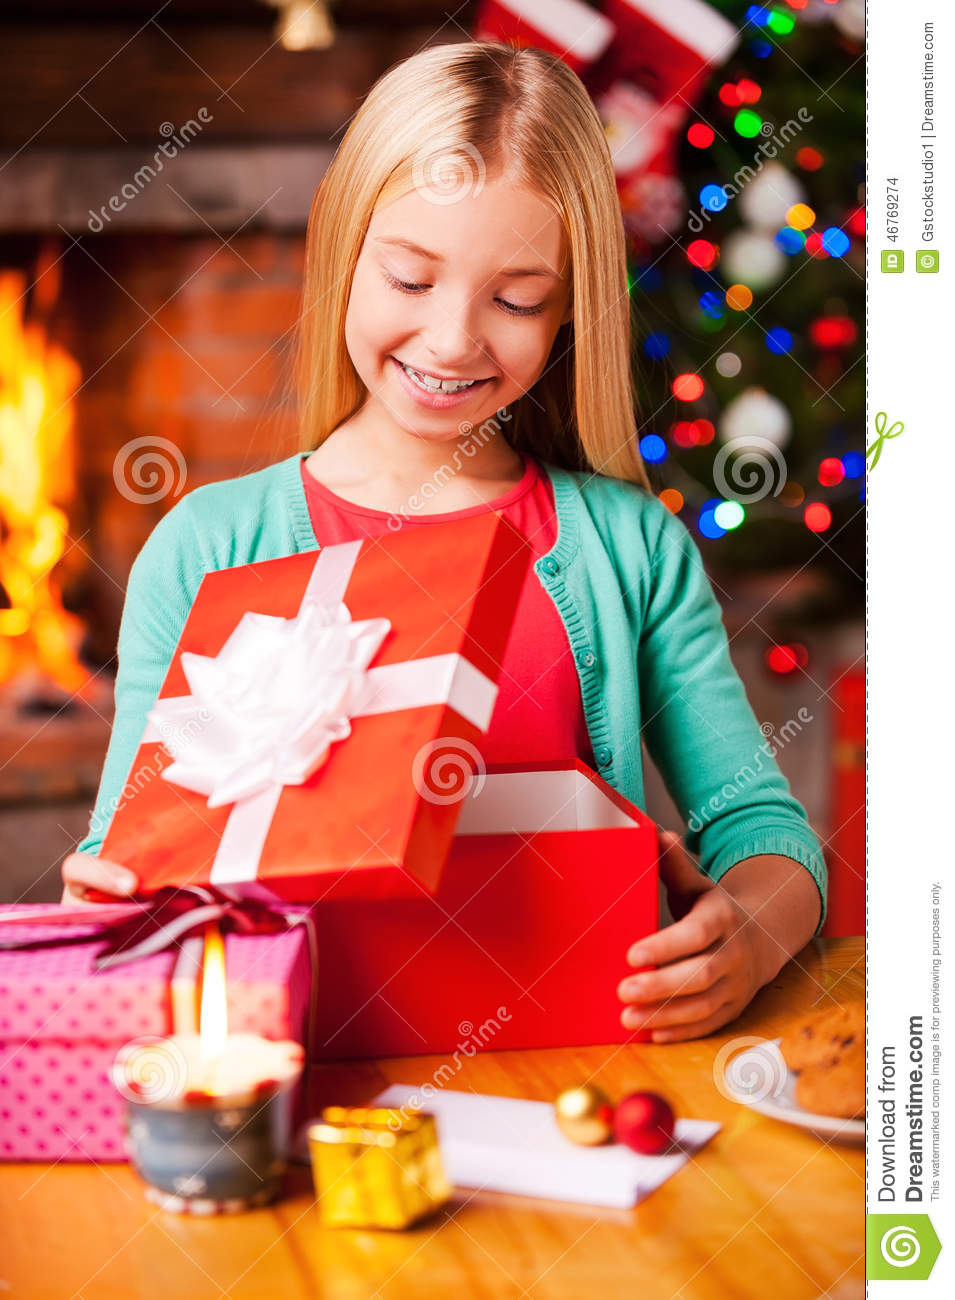 What A Surprise! Stock Photo - Image: 46769274